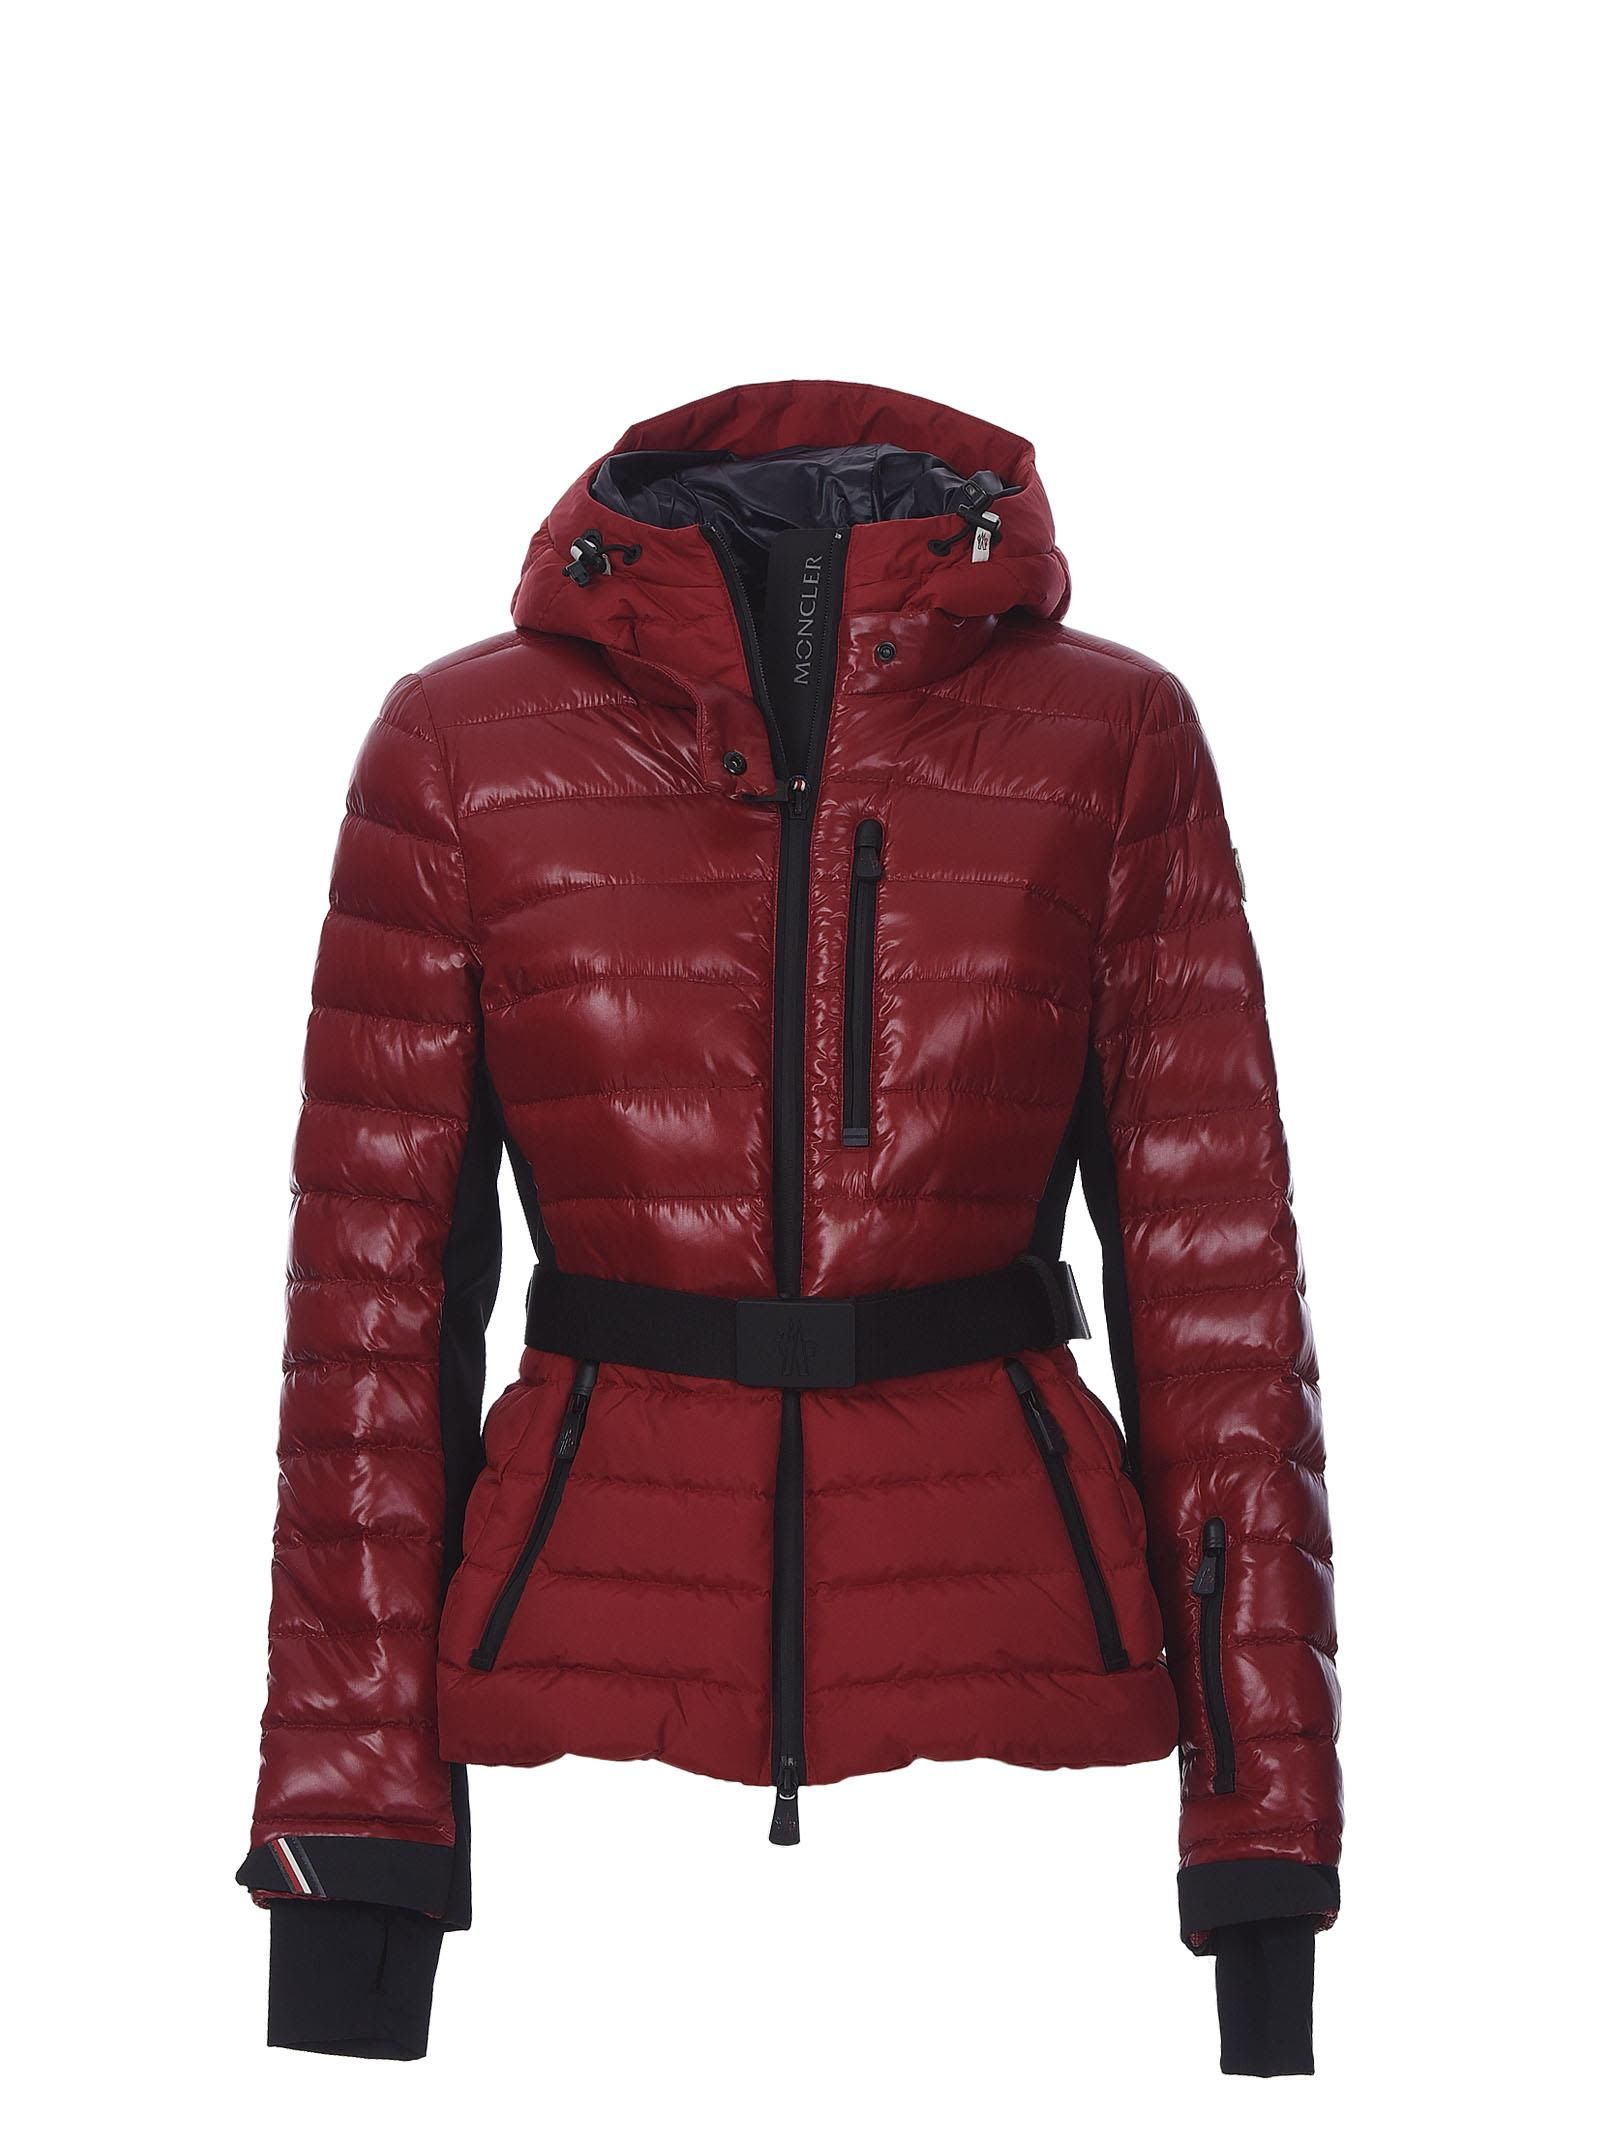 064ee93bf4773 MONCLER GRENOBLE BRUCHE DOWN JACKET RED.  monclergrenoble  cloth ...